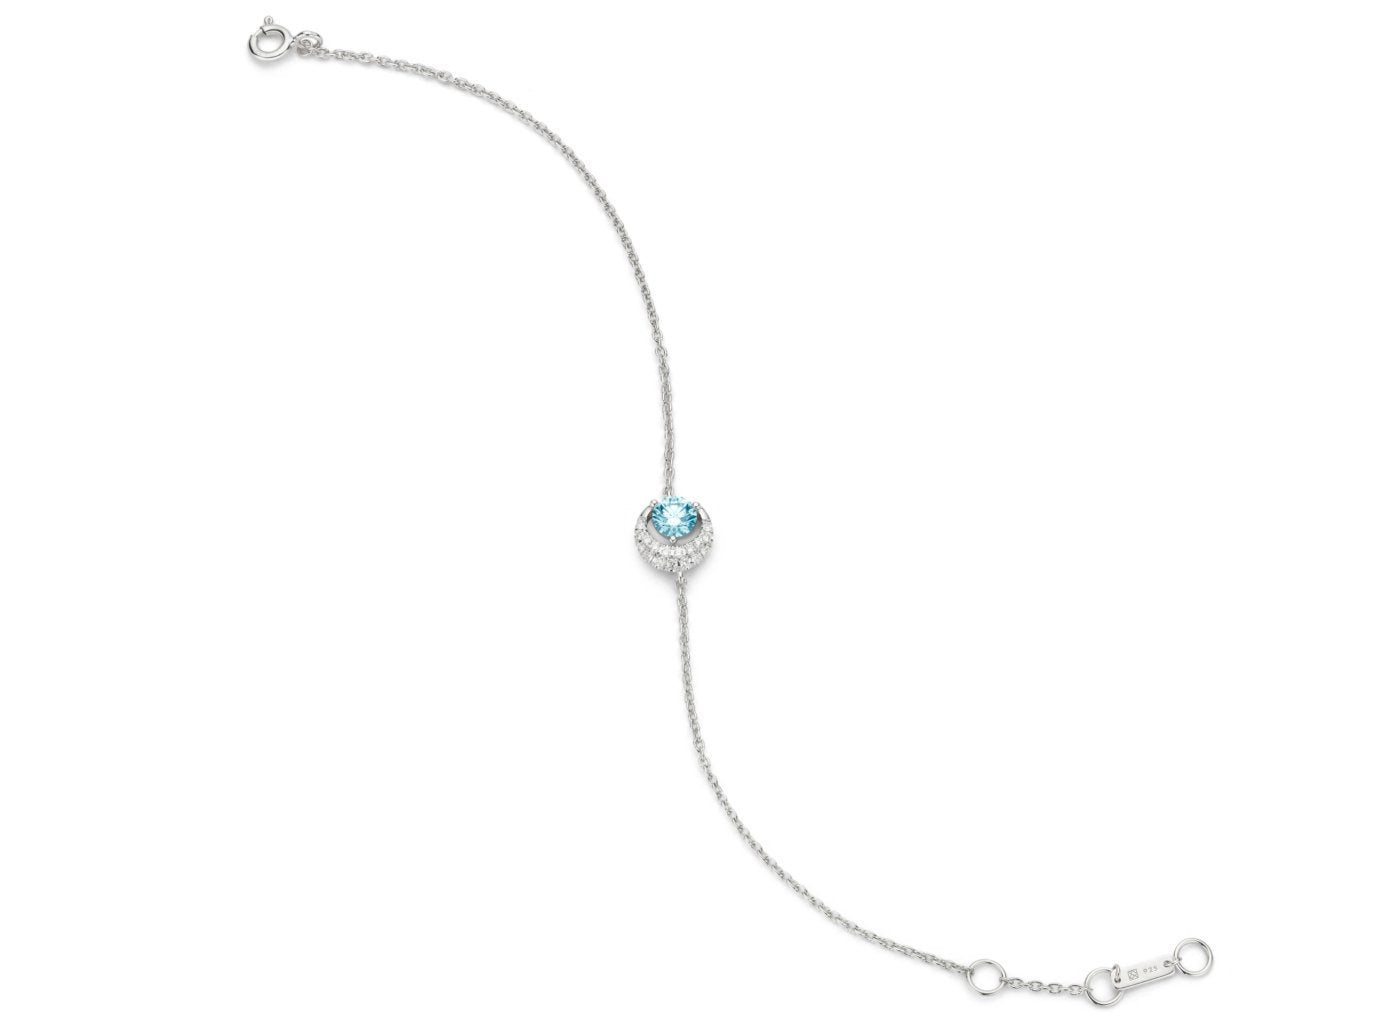 Wide view of Moon 1/2 carat bracelet with blue and white diamonds